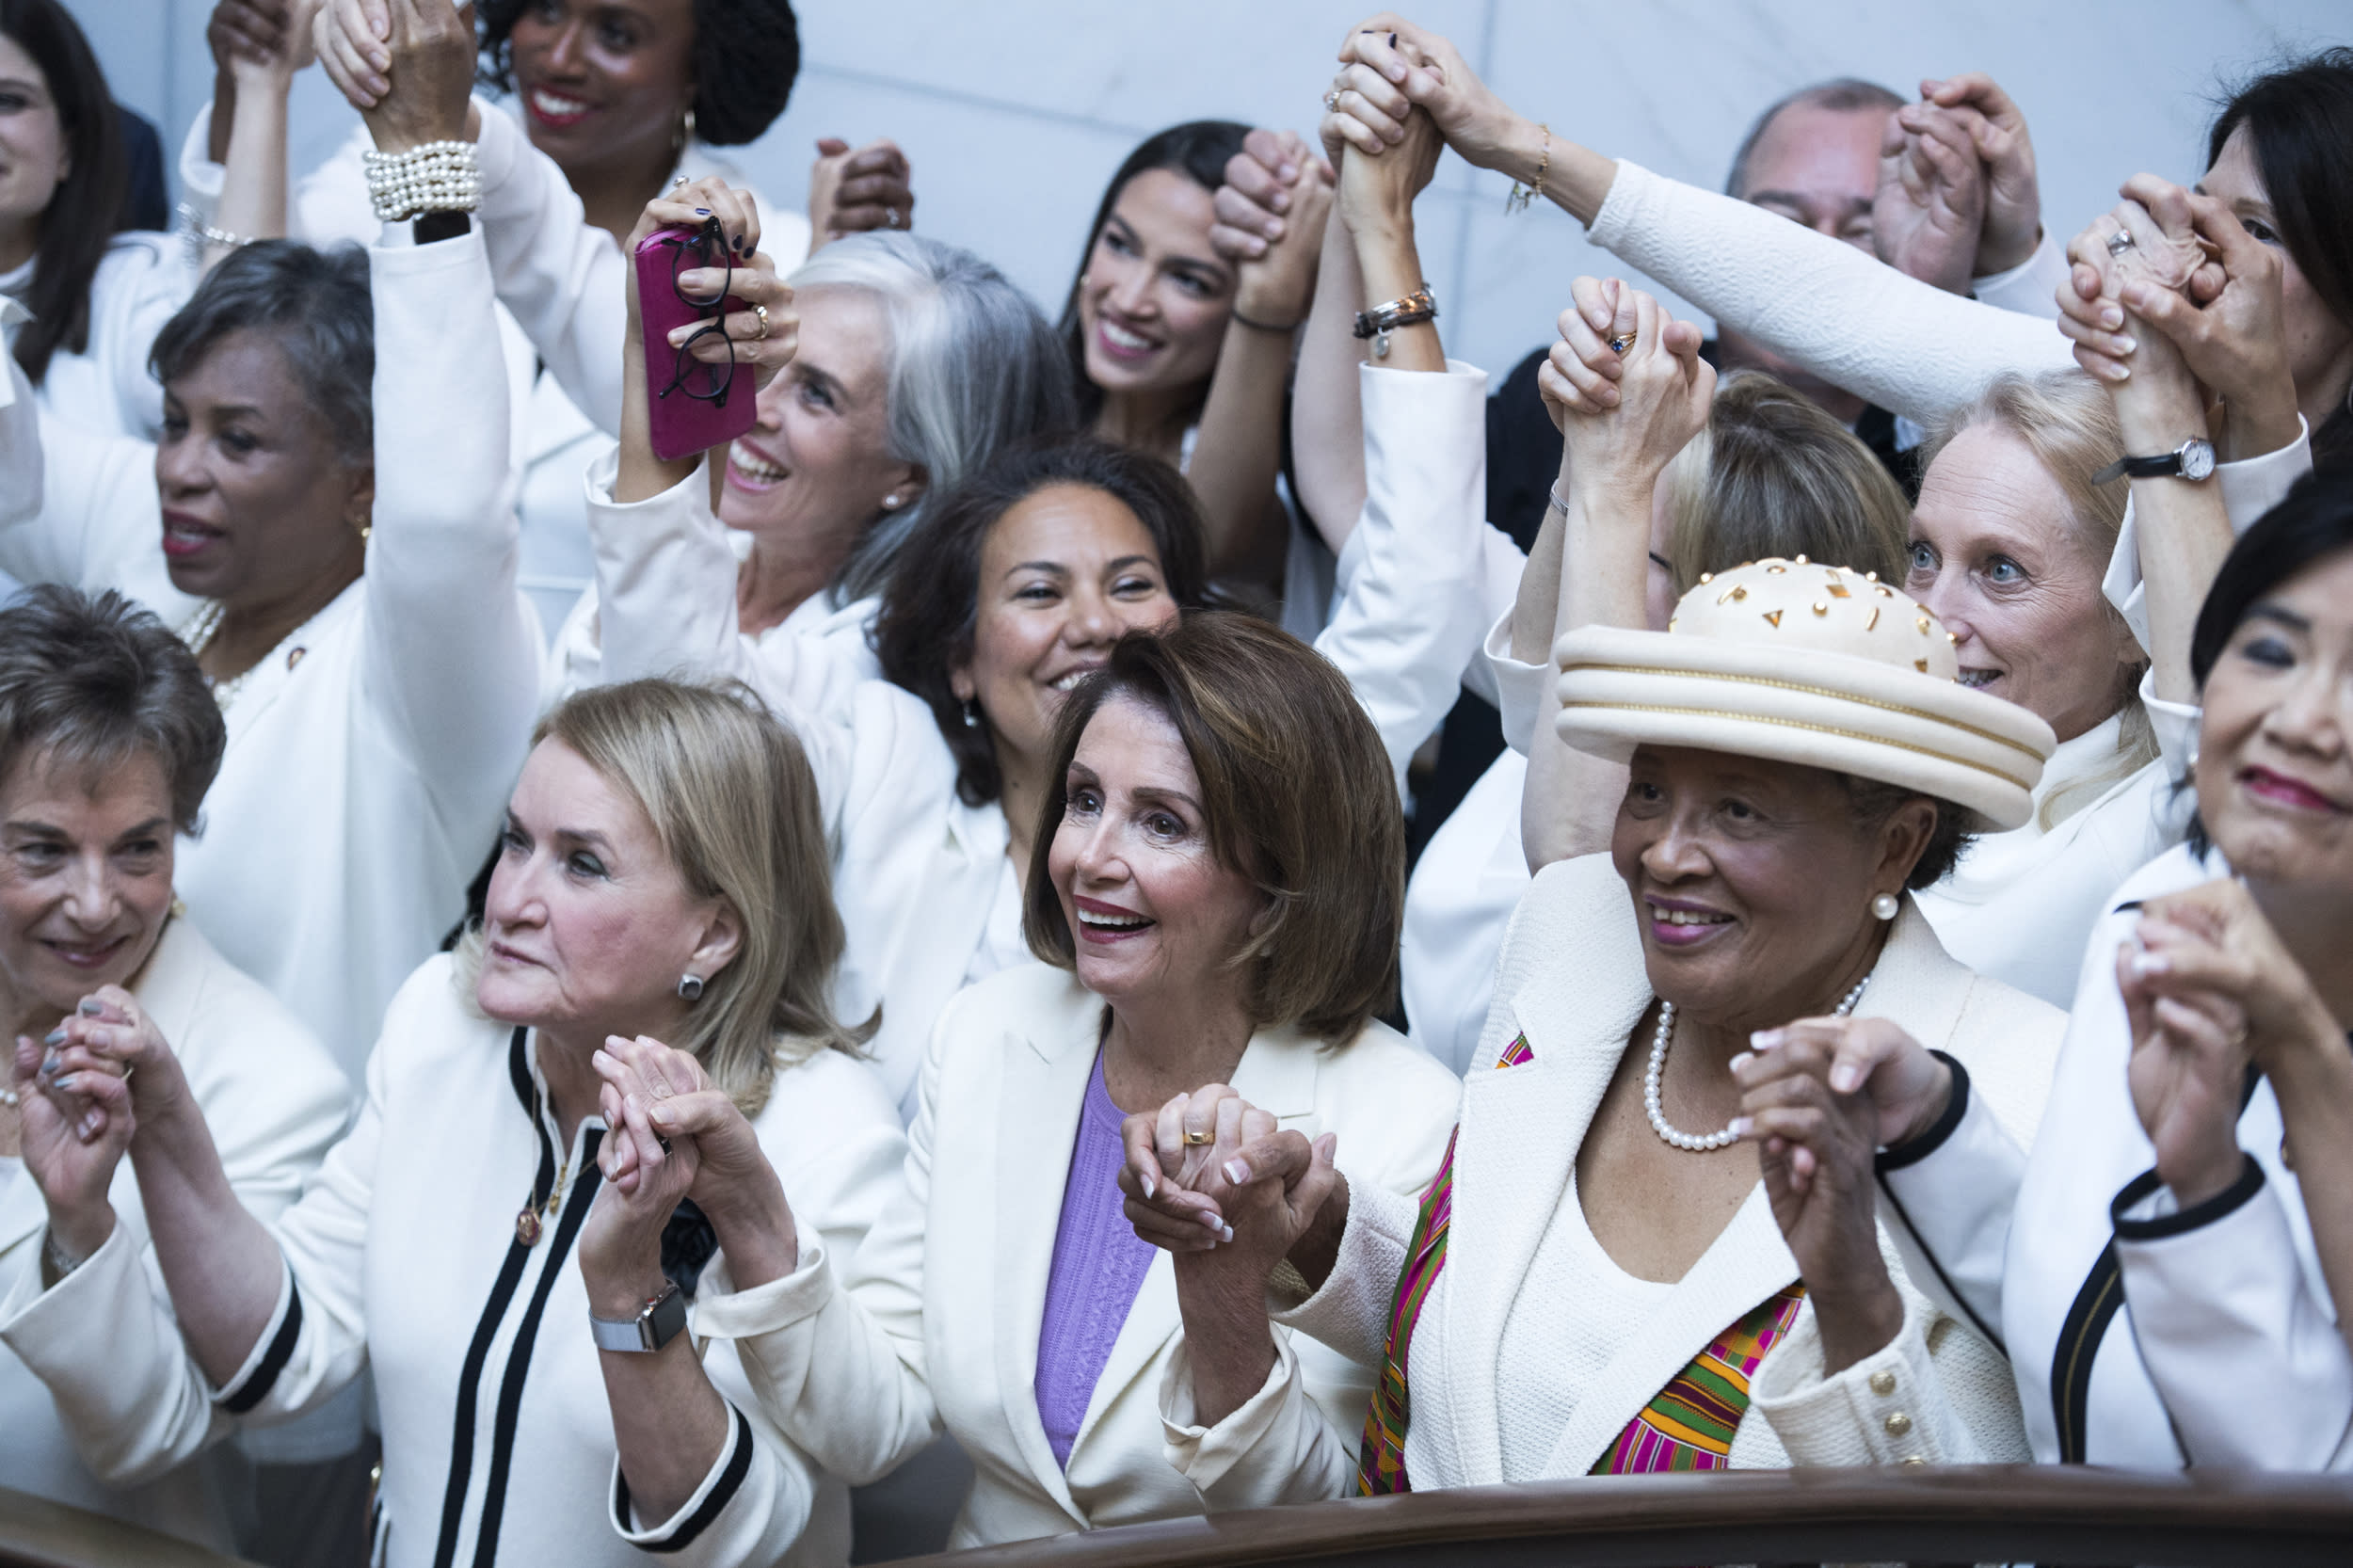 UNITED STATES - FEBRUARY 05: First row from left, Reps. Jan Schakowsky, D-Ill., Sylvia Garcia, D-Texas, Speaker Nancy Pelosi, D-Calif., and Alma Adams, D-N.C., pose for a group photo of House Democrats in the Capitol Visitor Center, who plan to wear 'suffragette white' to the State of the Union address to show solidarity for women's agendas on Tuesday, February 5, 2019. (Photo By Tom Williams/CQ Roll Call)